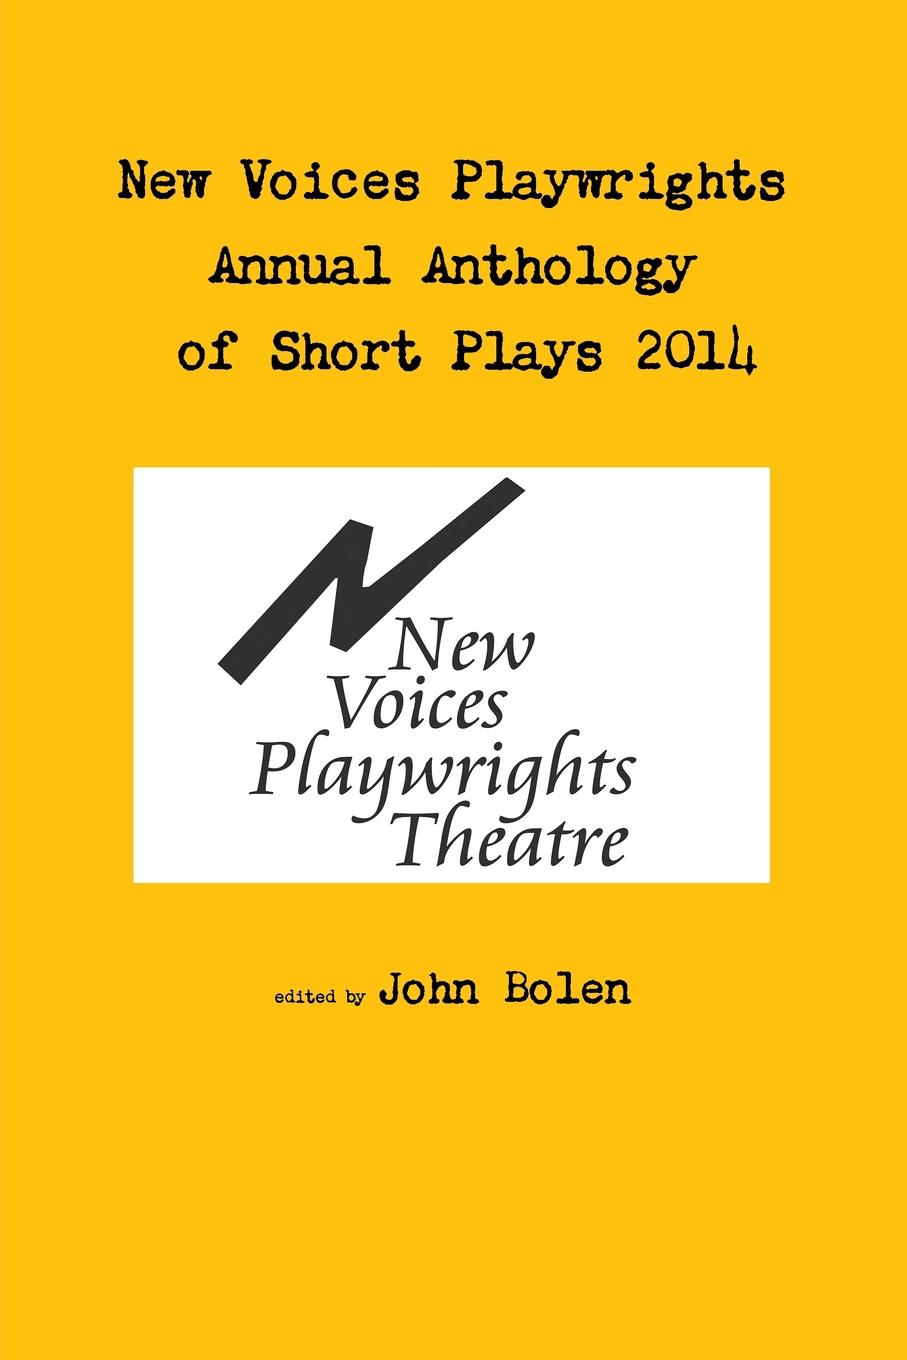 John Bolen New Voices Annual Anthology of Short Plays 2014 plays